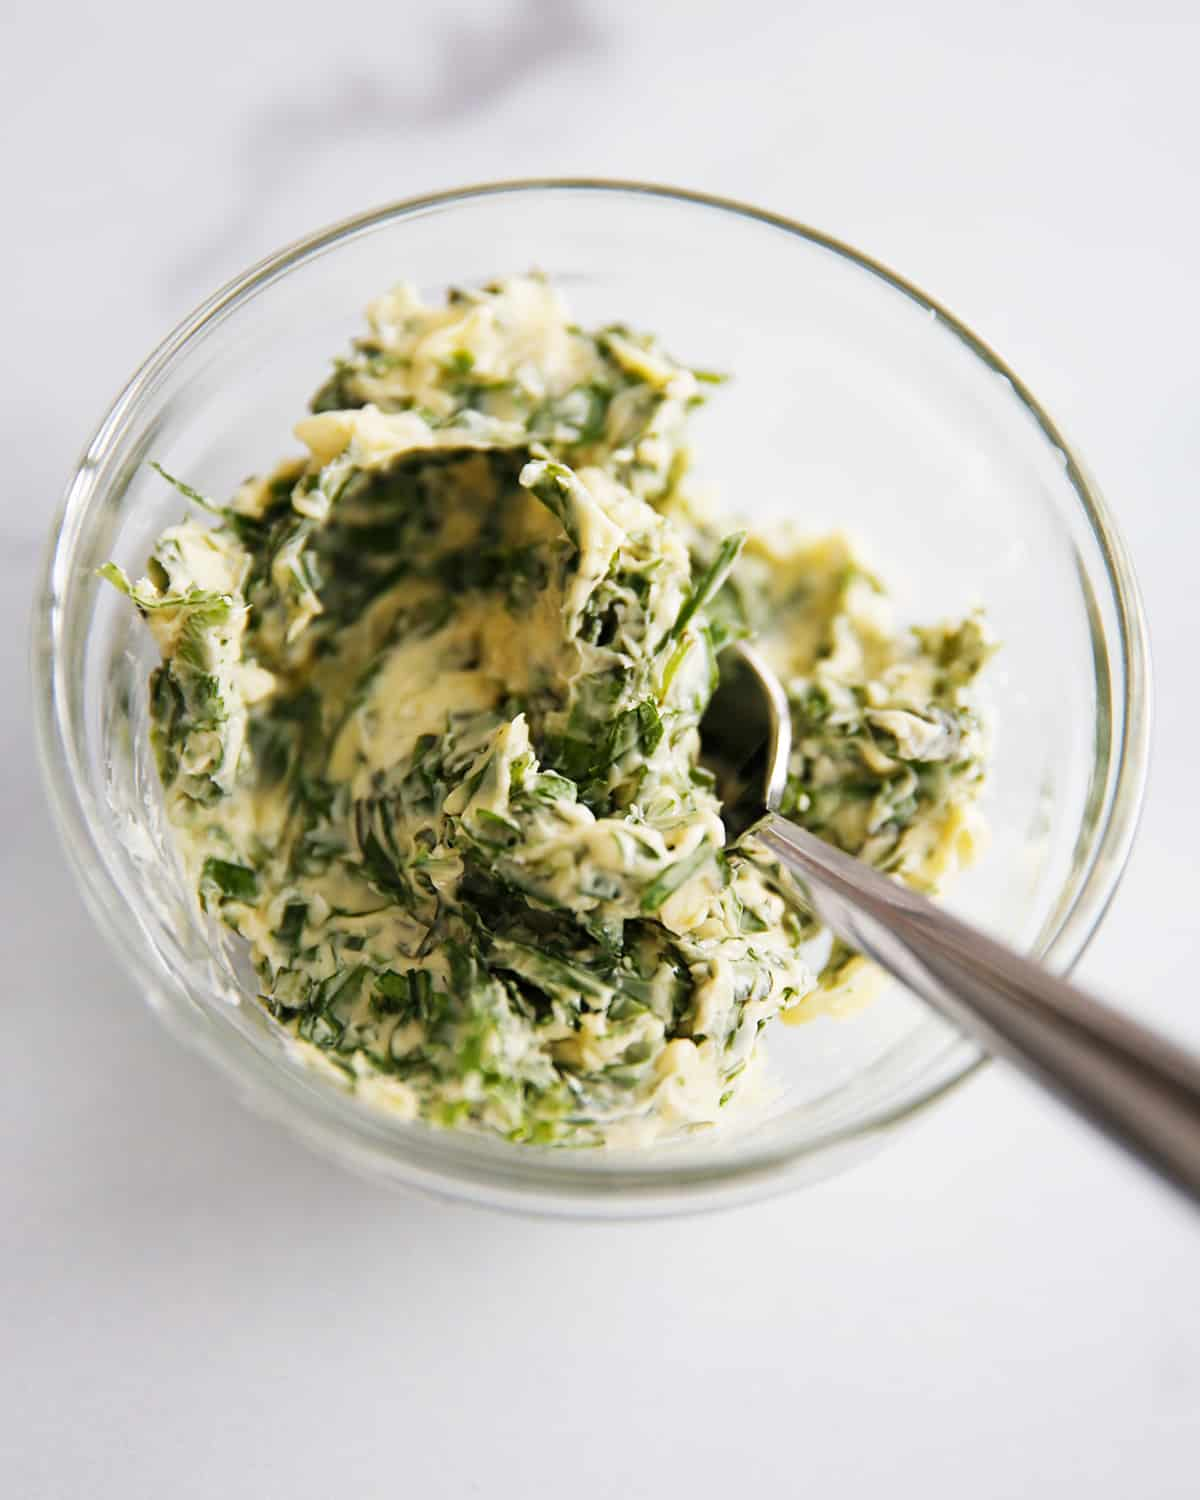 herb compound butter in a bowl